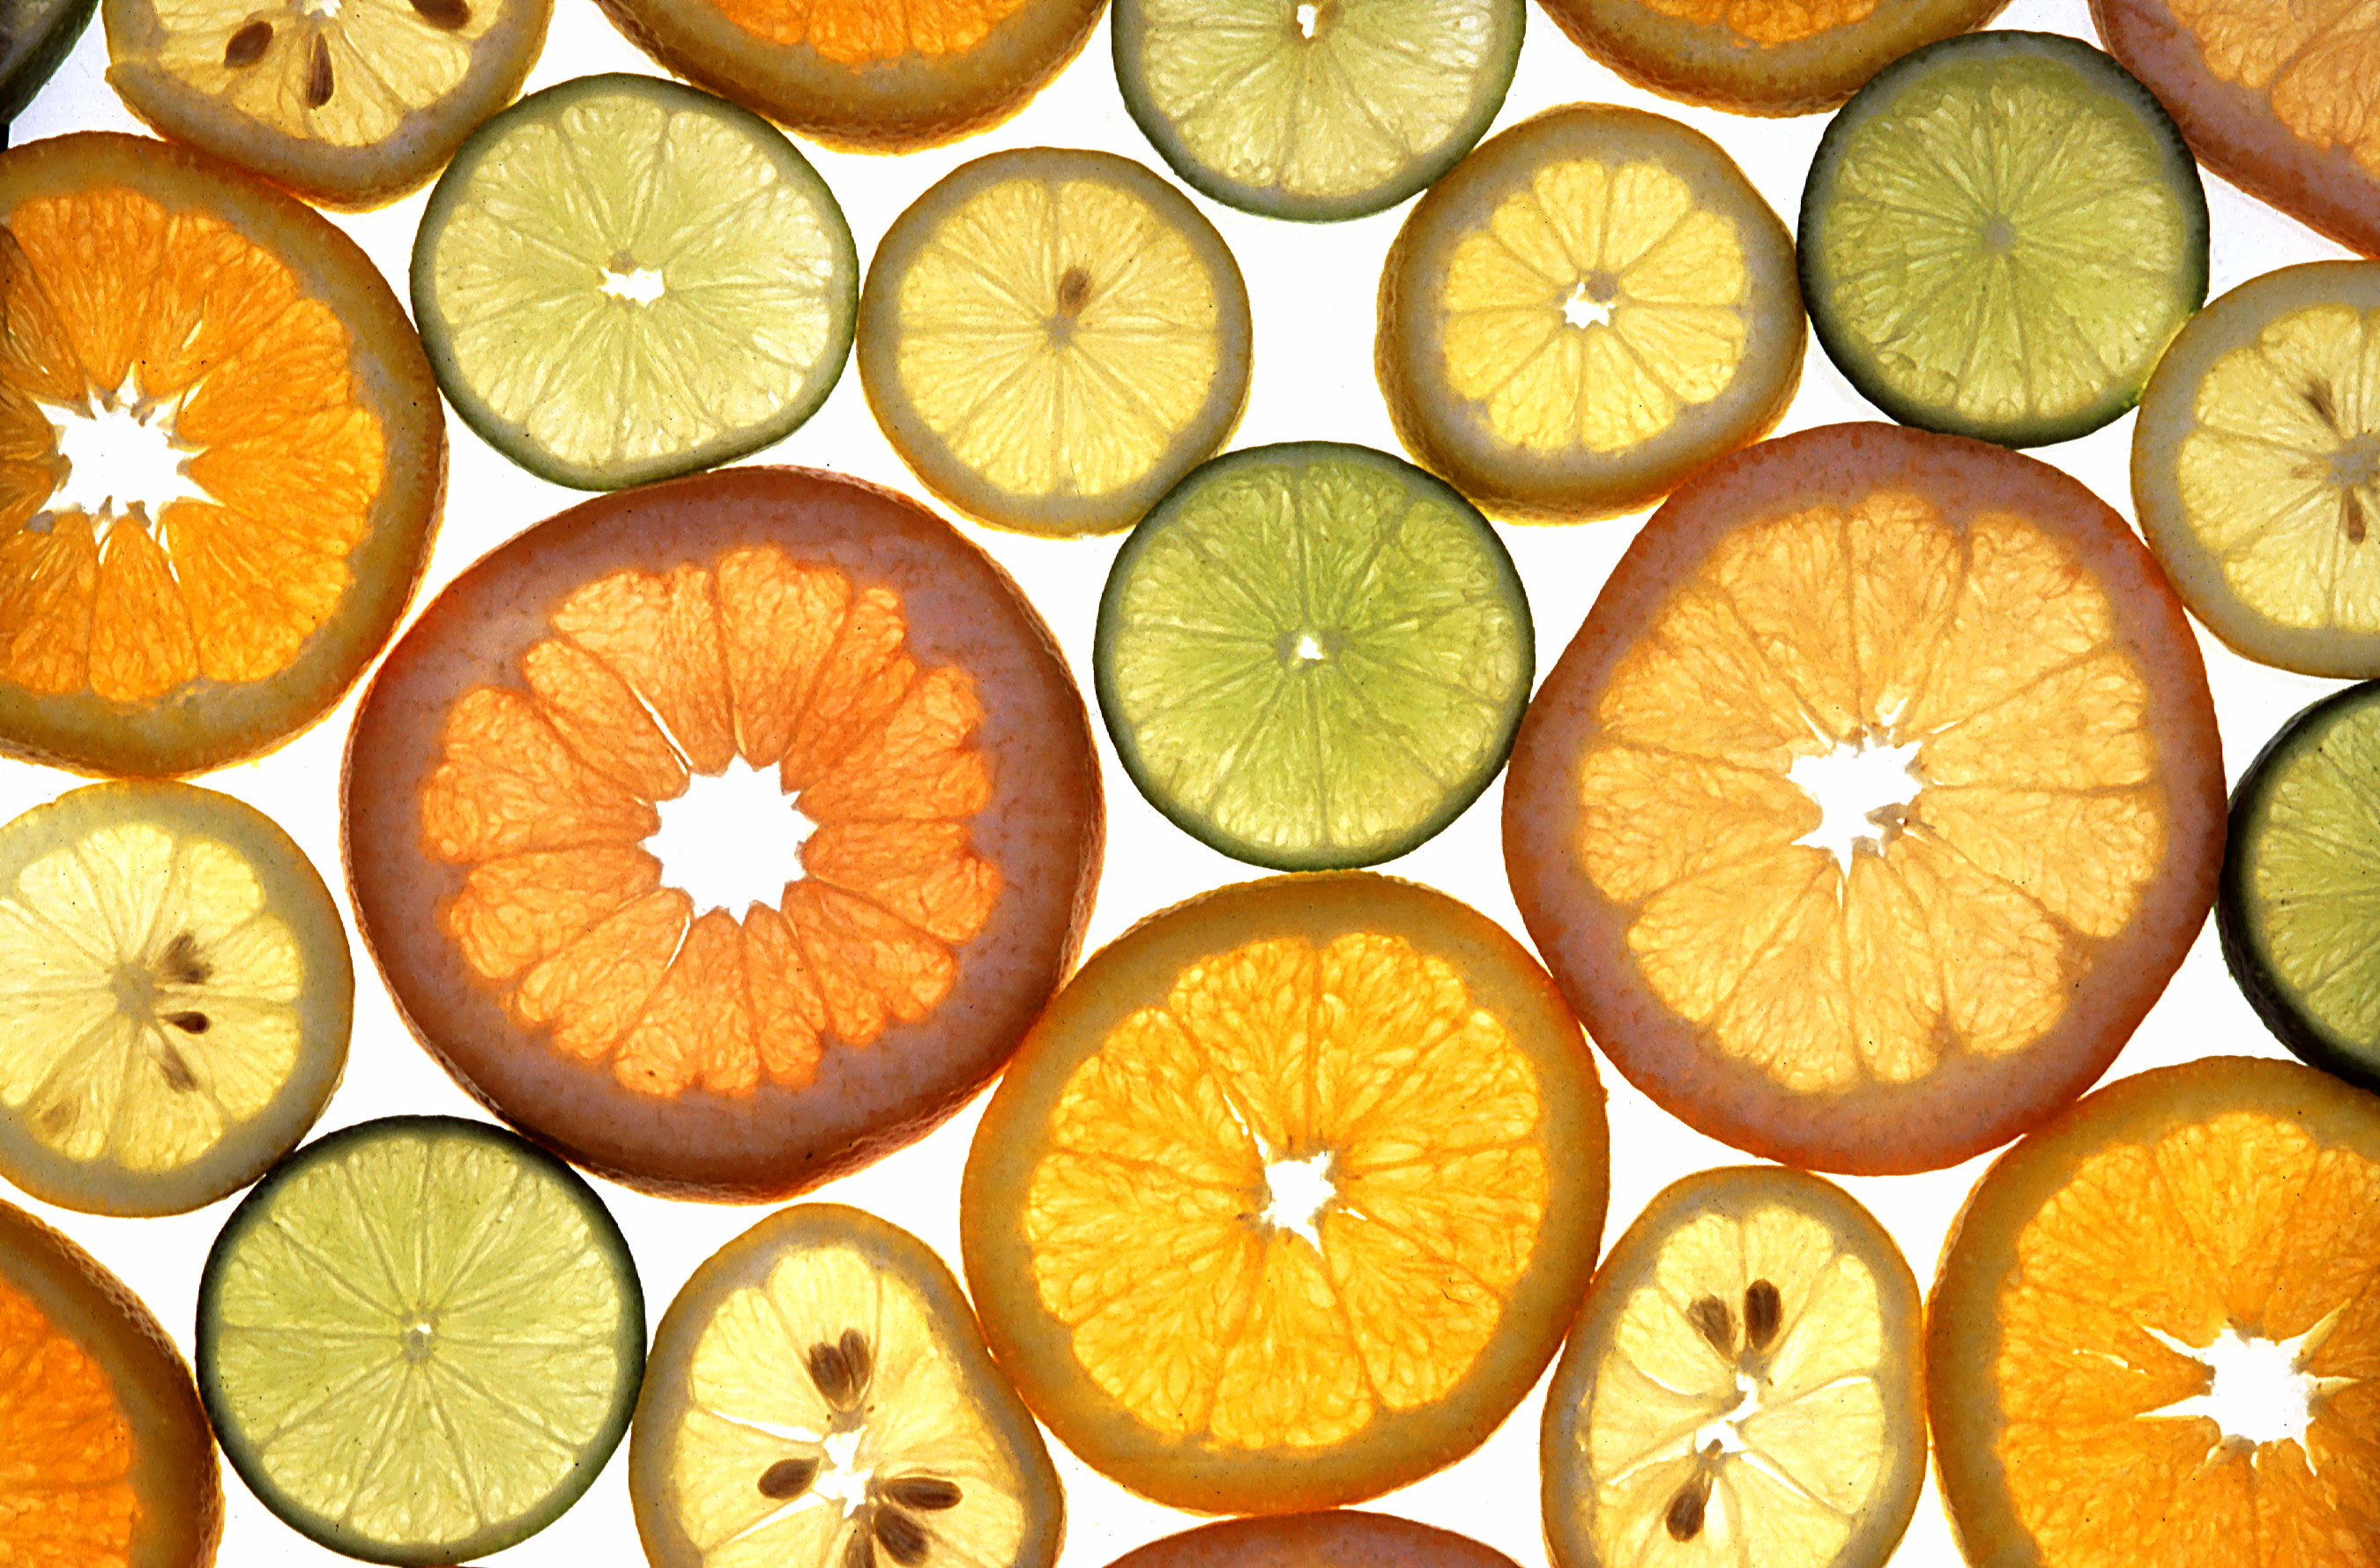 File:Citrus fruits.jpg - Wikipedia, the free encyclopedia